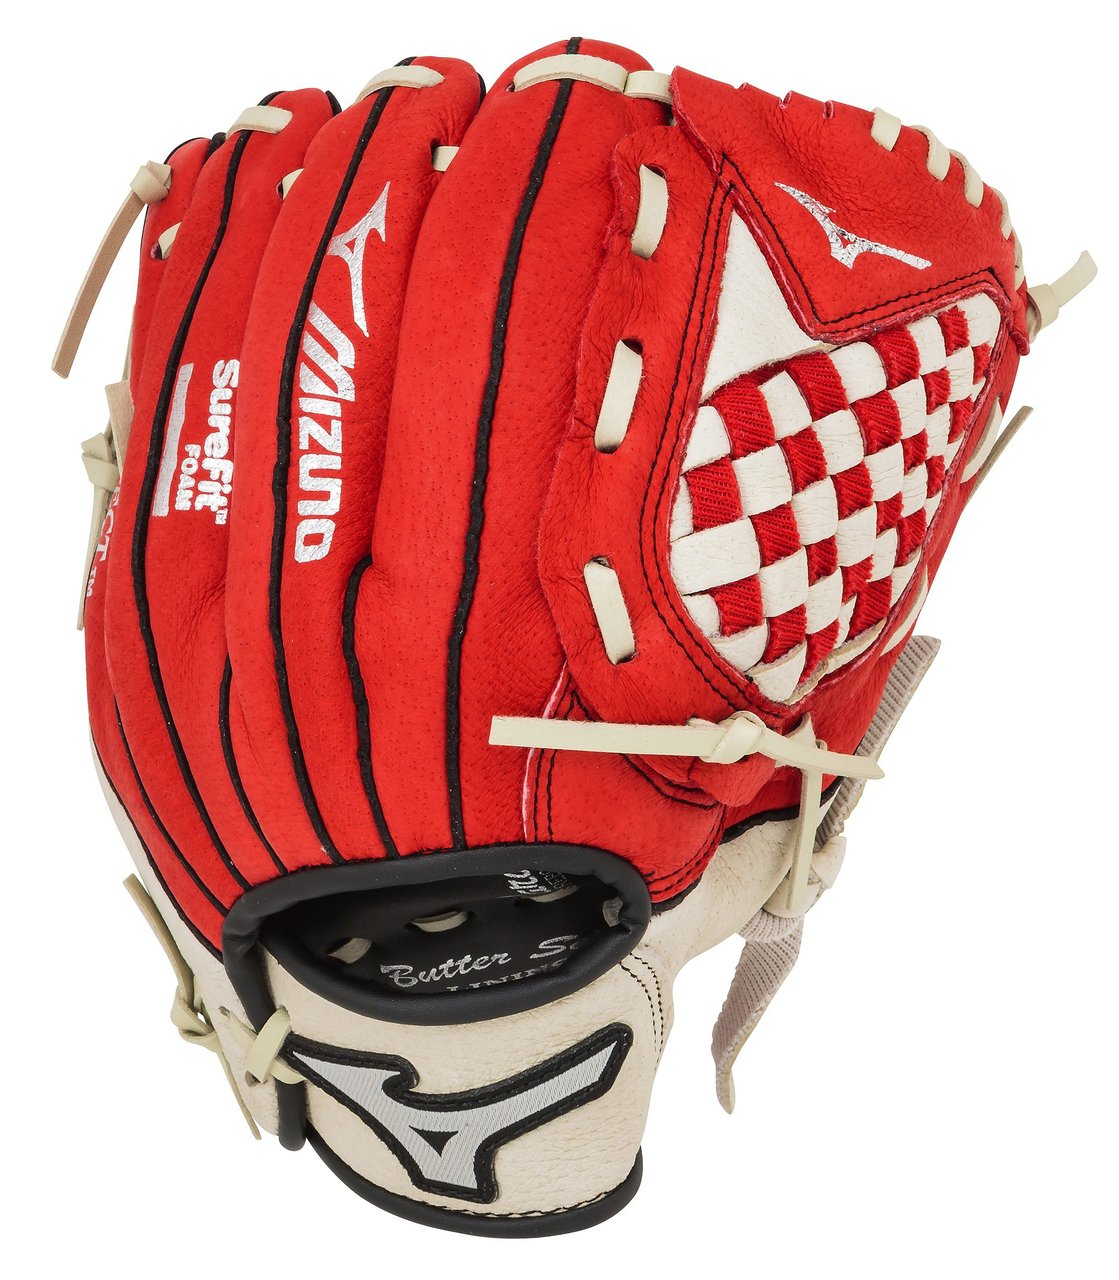 mizuno-prospect-series-gpp1000y1rd-10-inch-red-youth-baseball-glove-left-handed-throw GPP1000Y1RD-Left Handed Throw Mizuno 041969127902 Mizuno Youth Prospect Series Baseball Gloves. Patented Power Close makes catching